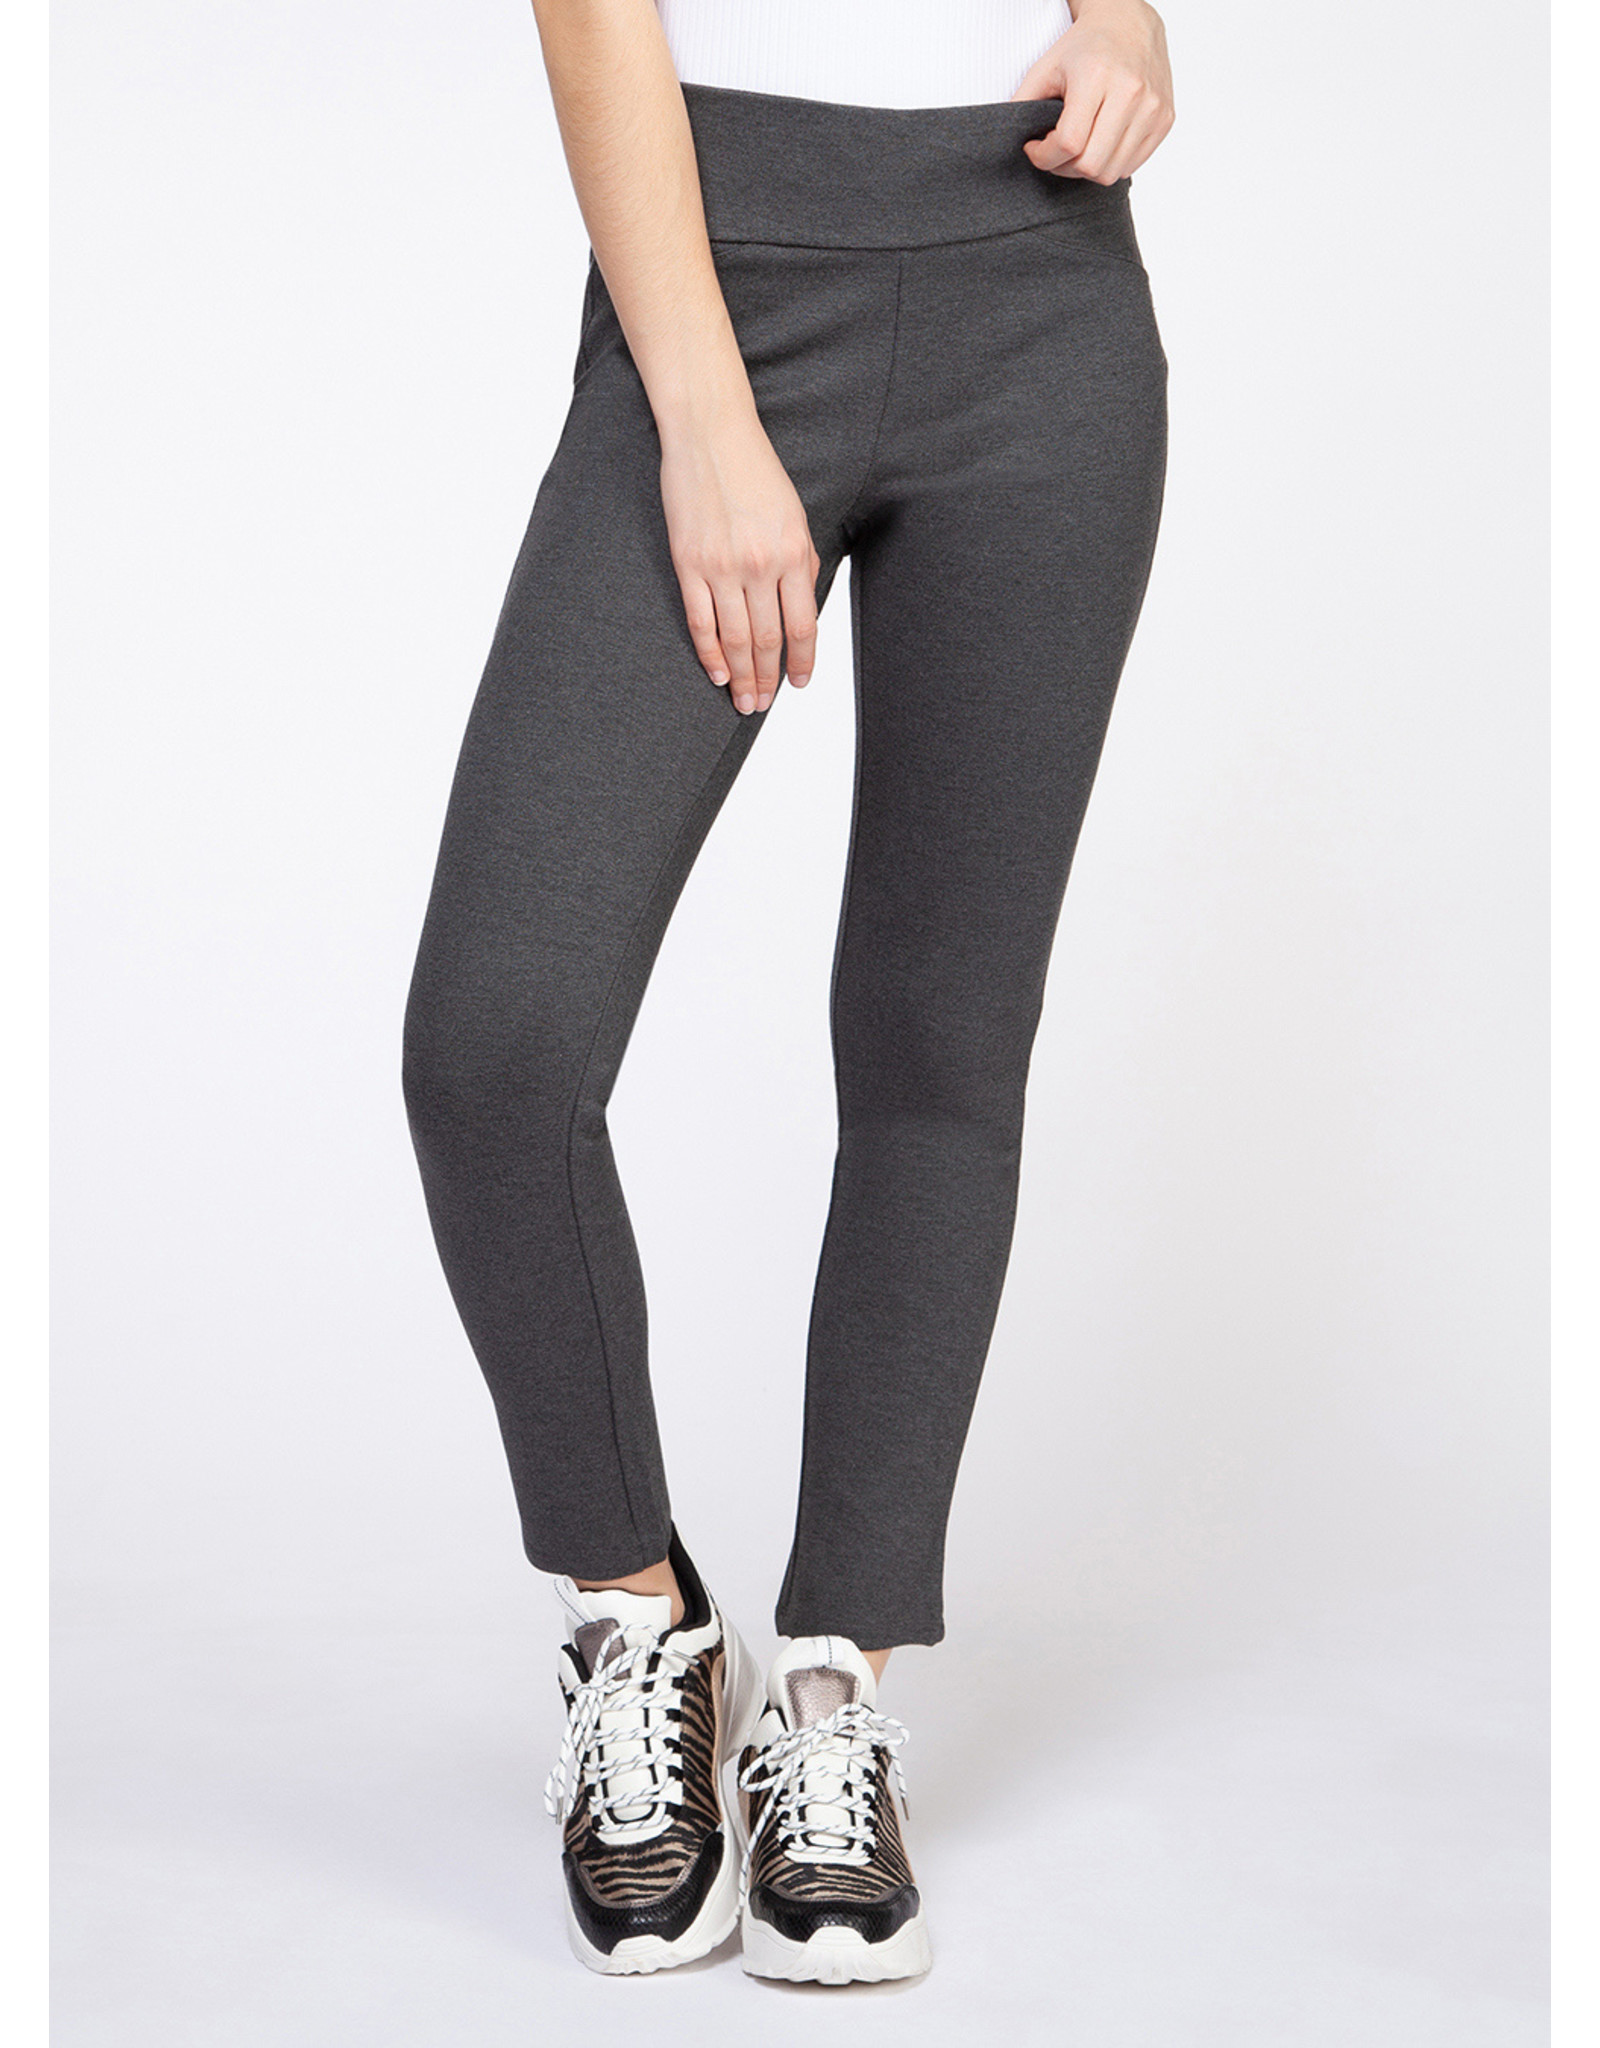 Pull-On Legging